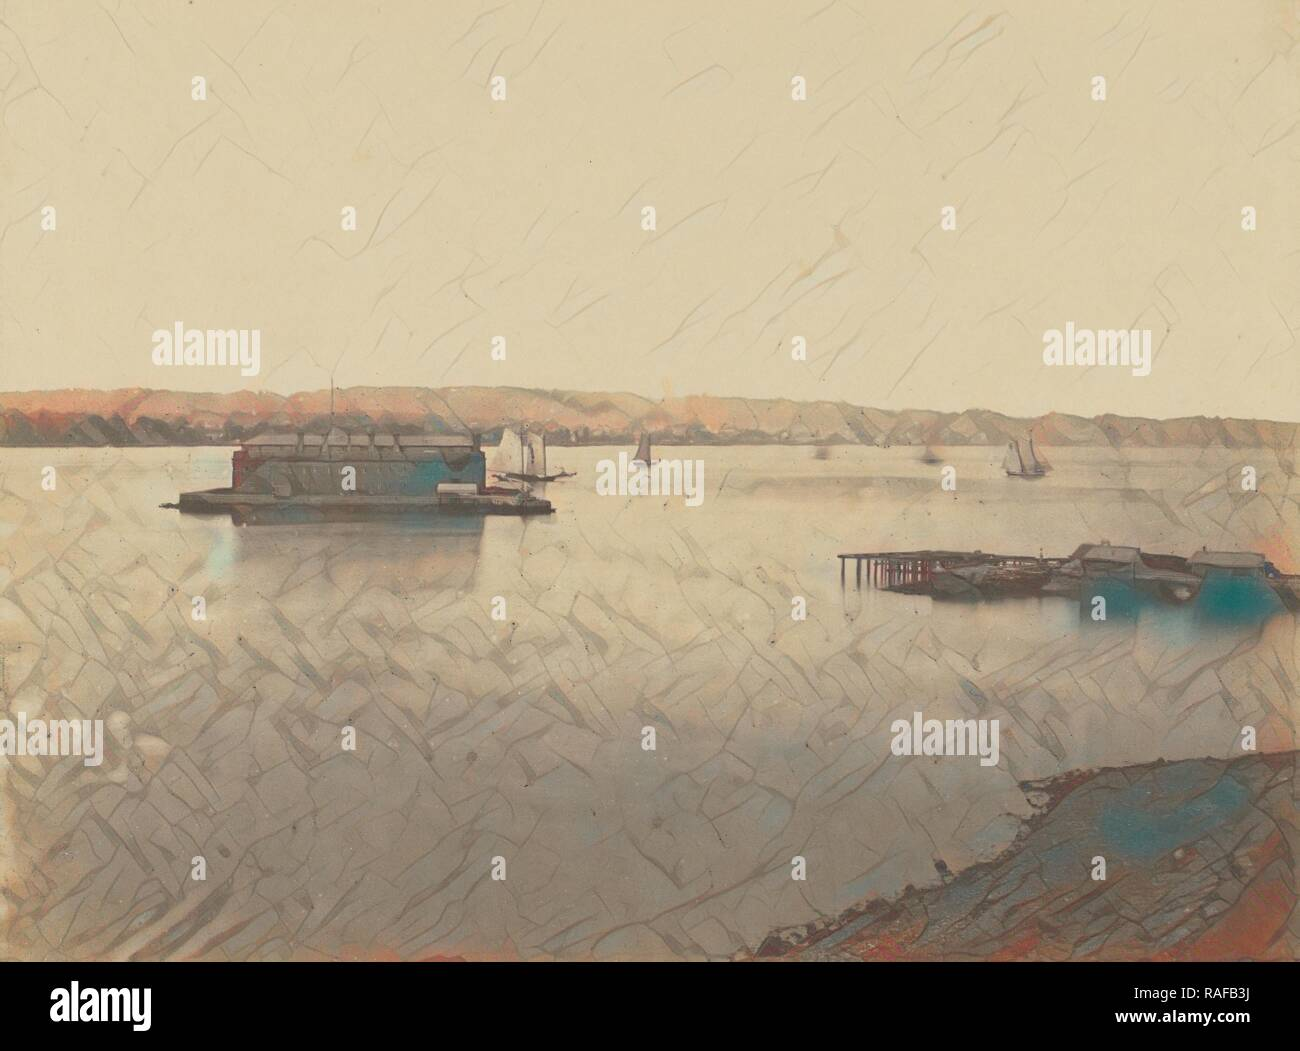 Fort Hamilton and Long Island, Attributed to Silas A. Holmes (American, 1820 - 1886), about 1855, Salted paper print reimagined - Stock Image